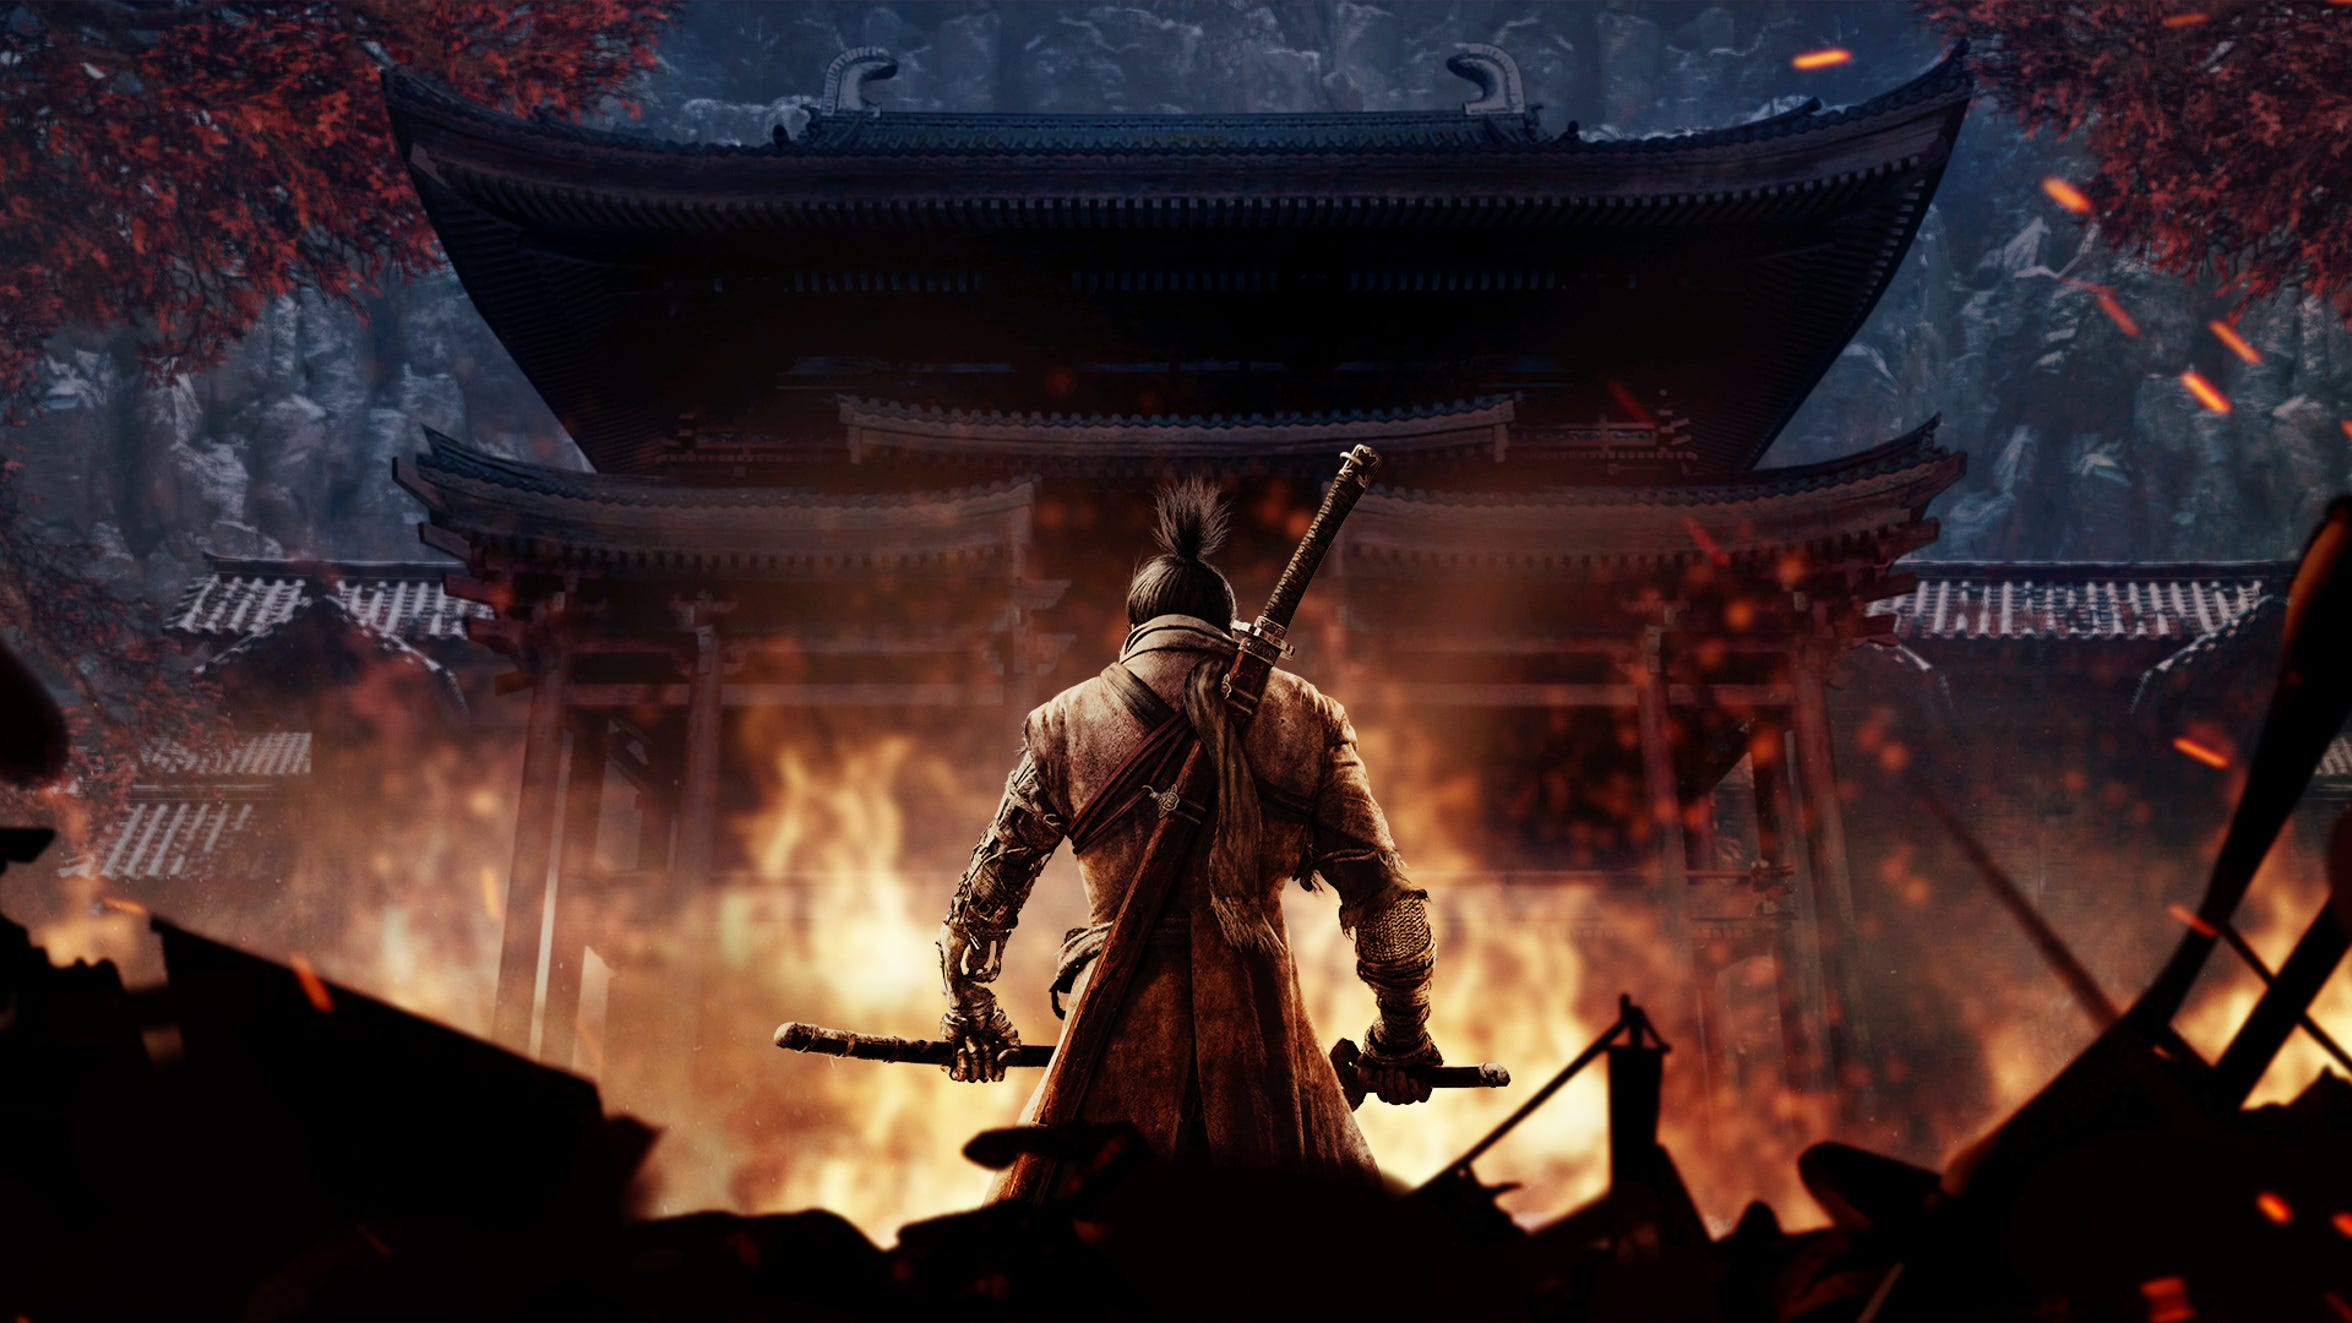 Sekiro: Shadows Die Twice for PC, PS4 and Xbox One.